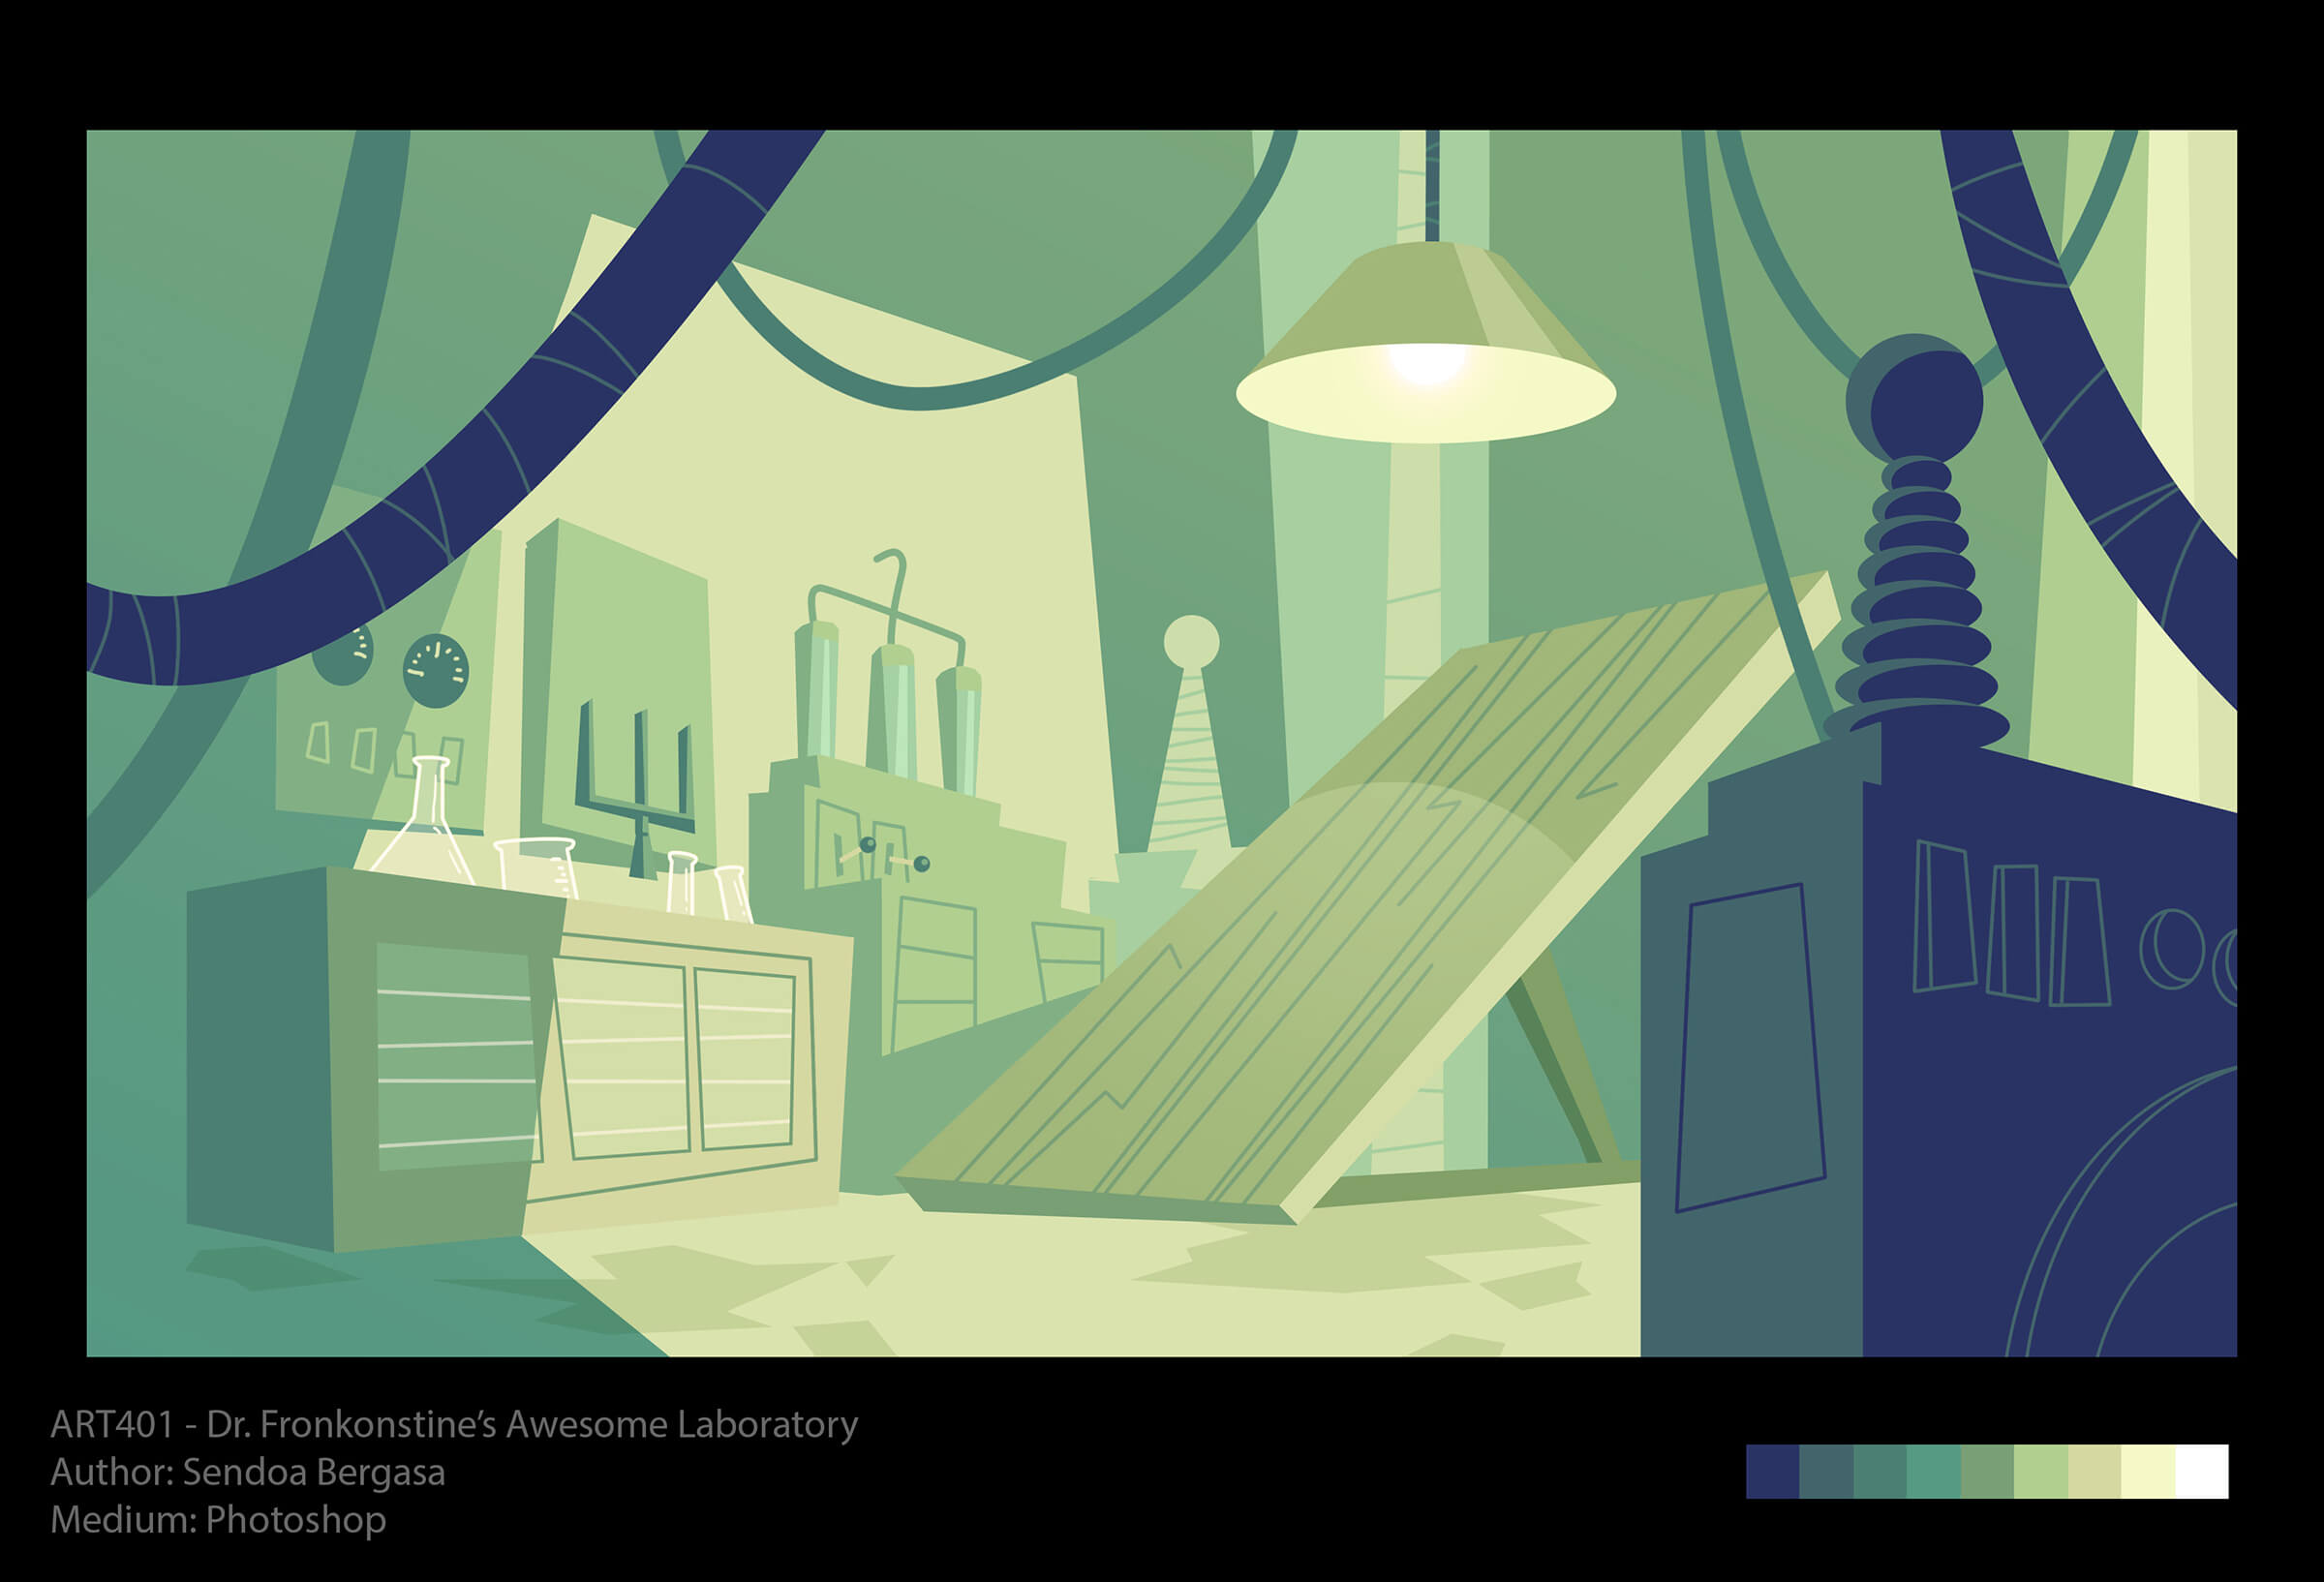 Stylized depiction of a mad scientist's laboratory in shades of green and blue, with switches, beakers, and operating table.